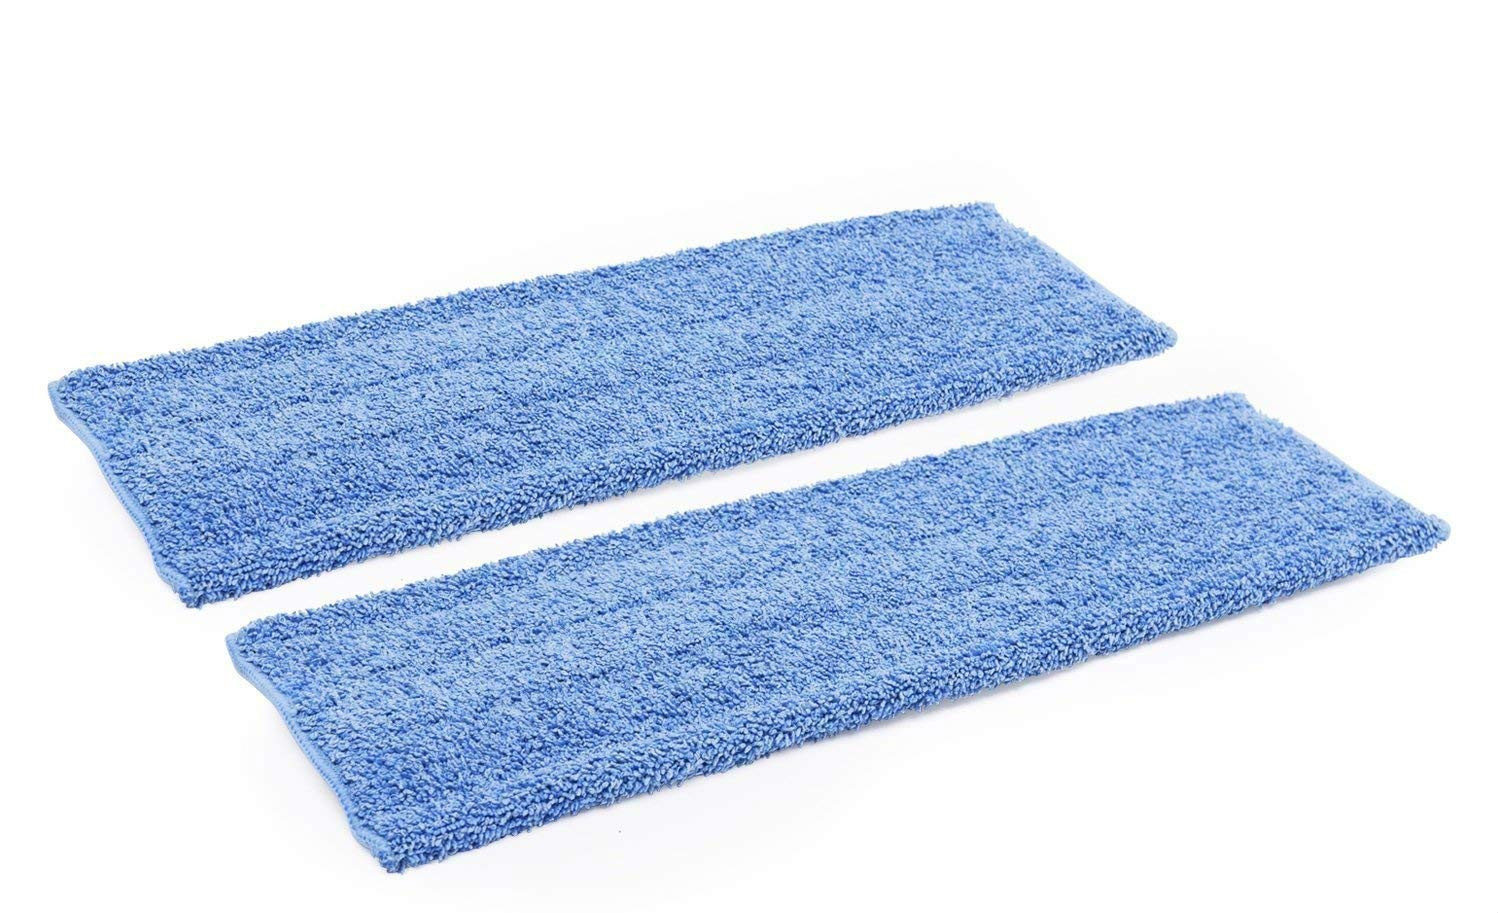 18' Premium Microfiber Wet Mop Pad - 2 Pack | Use with our 18' Professional Microfiber Mop Microfiber Wholesale PMWM20A